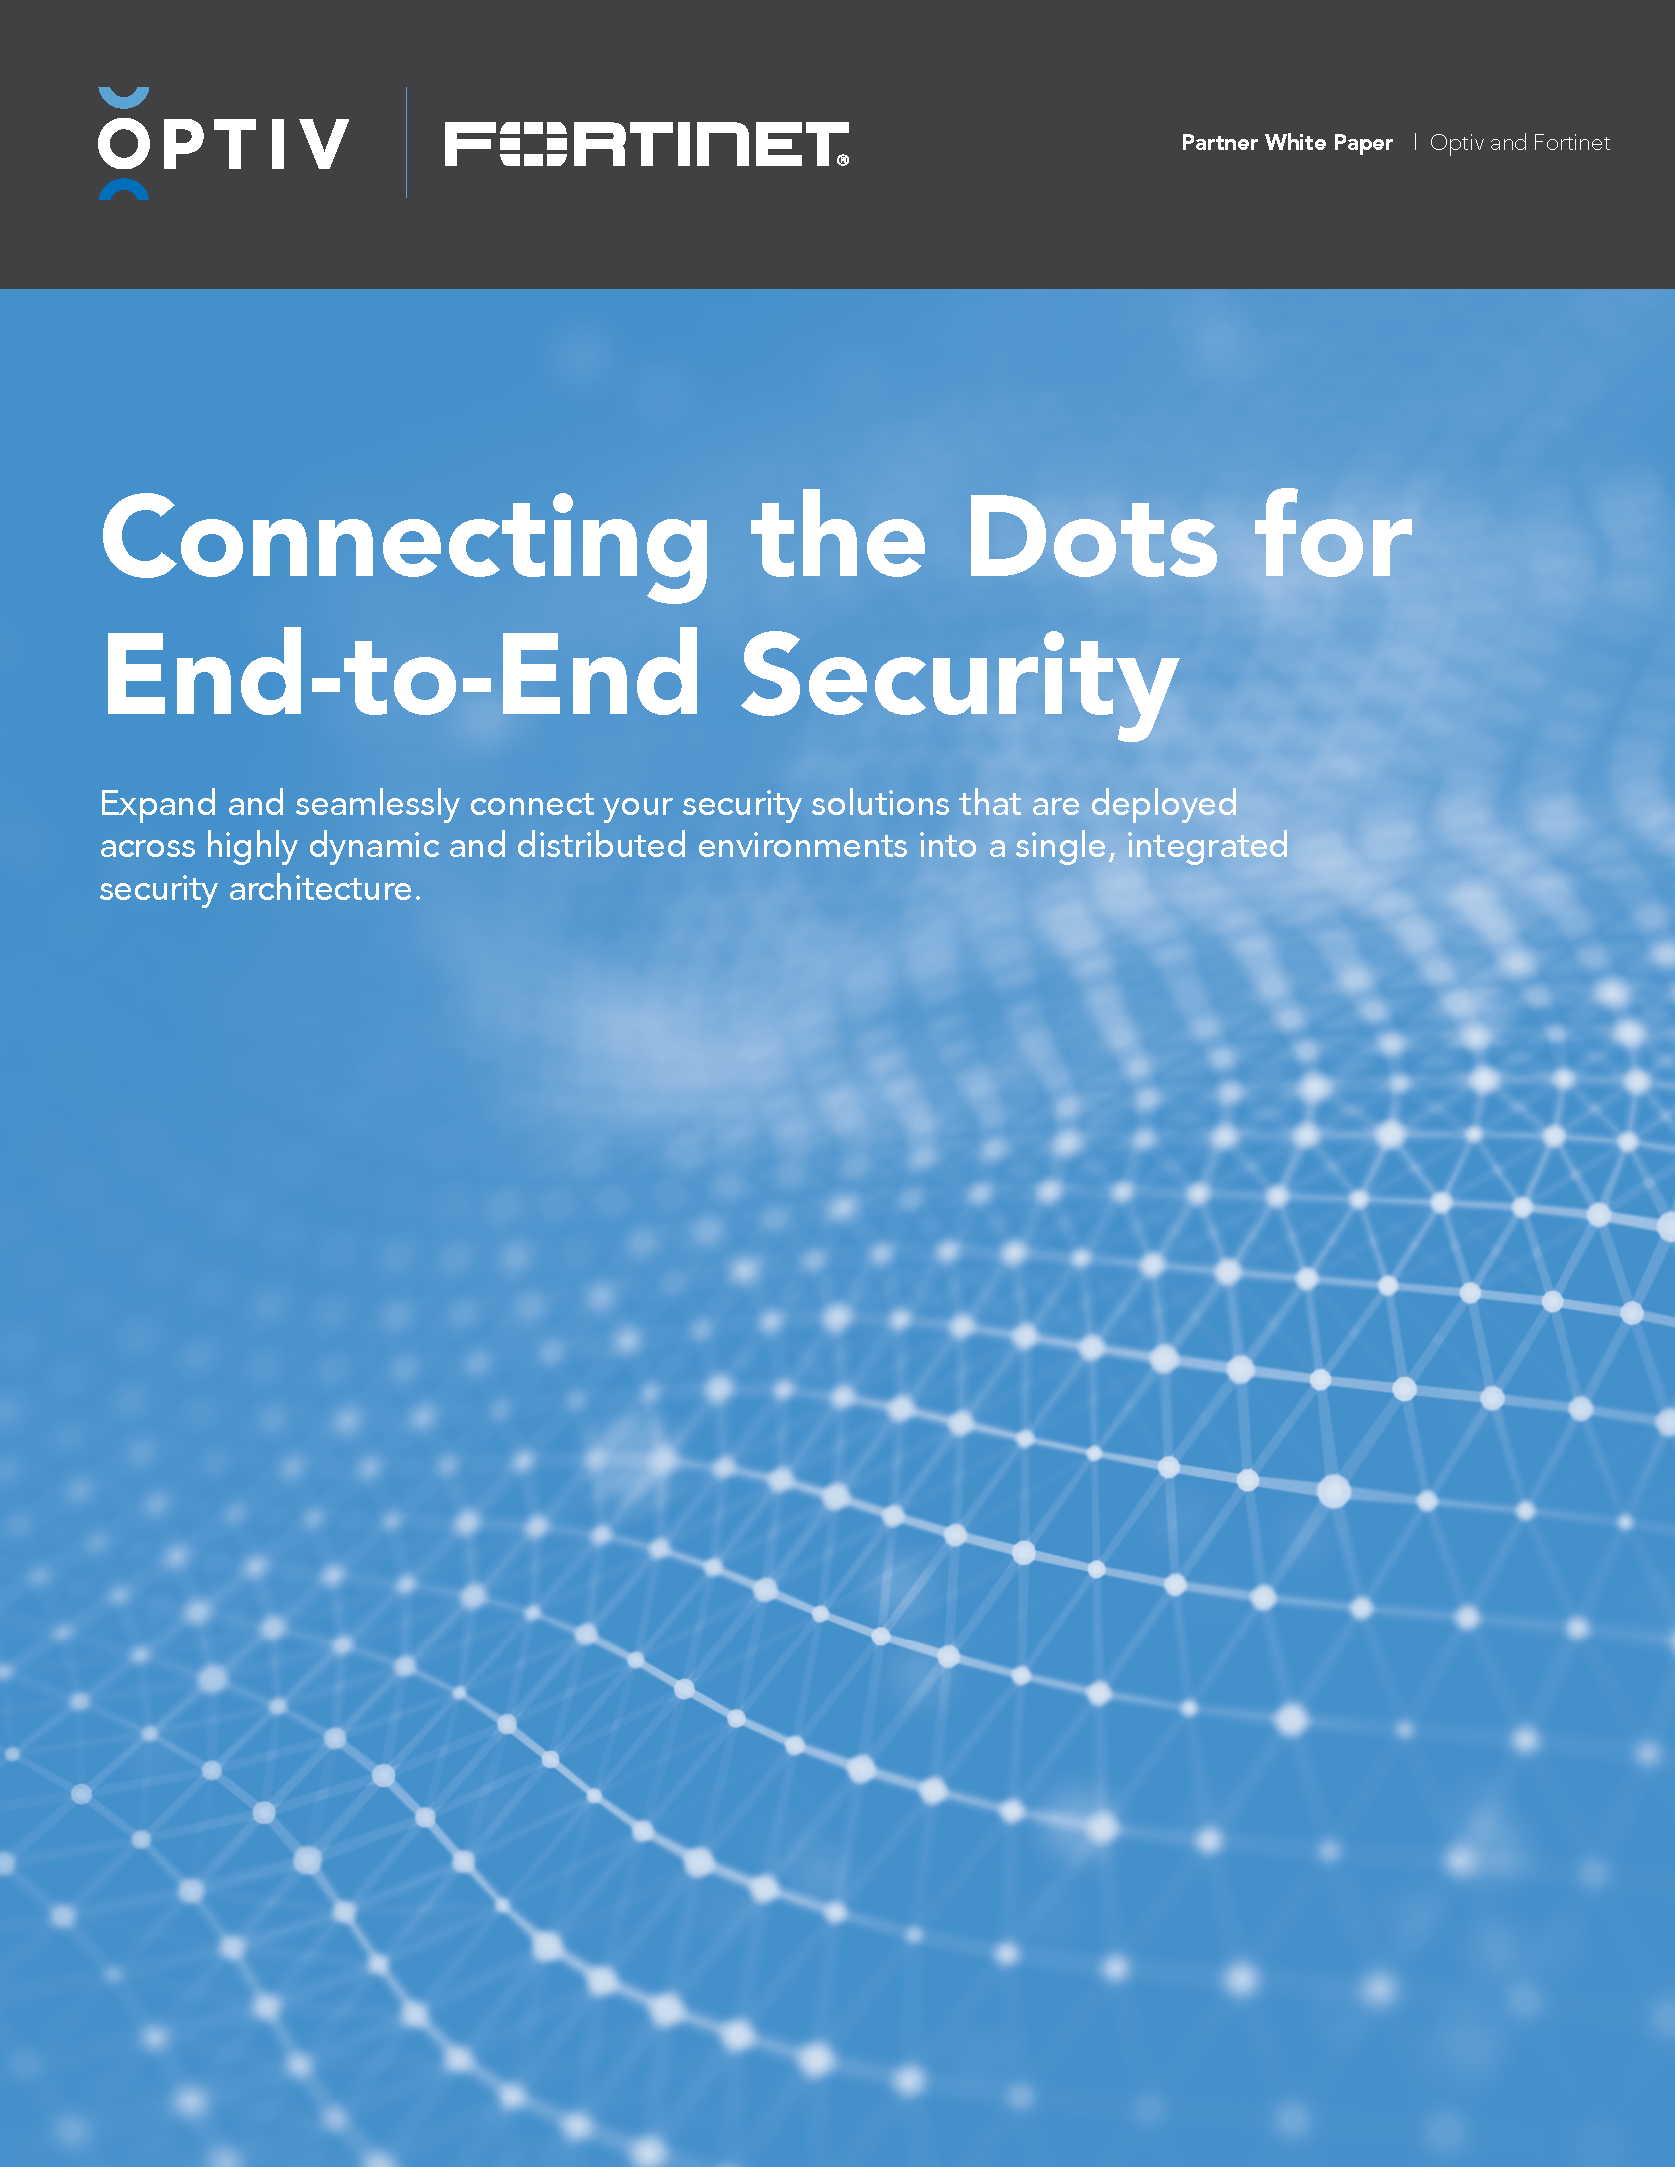 Connecting the Dots for End-to-End Security